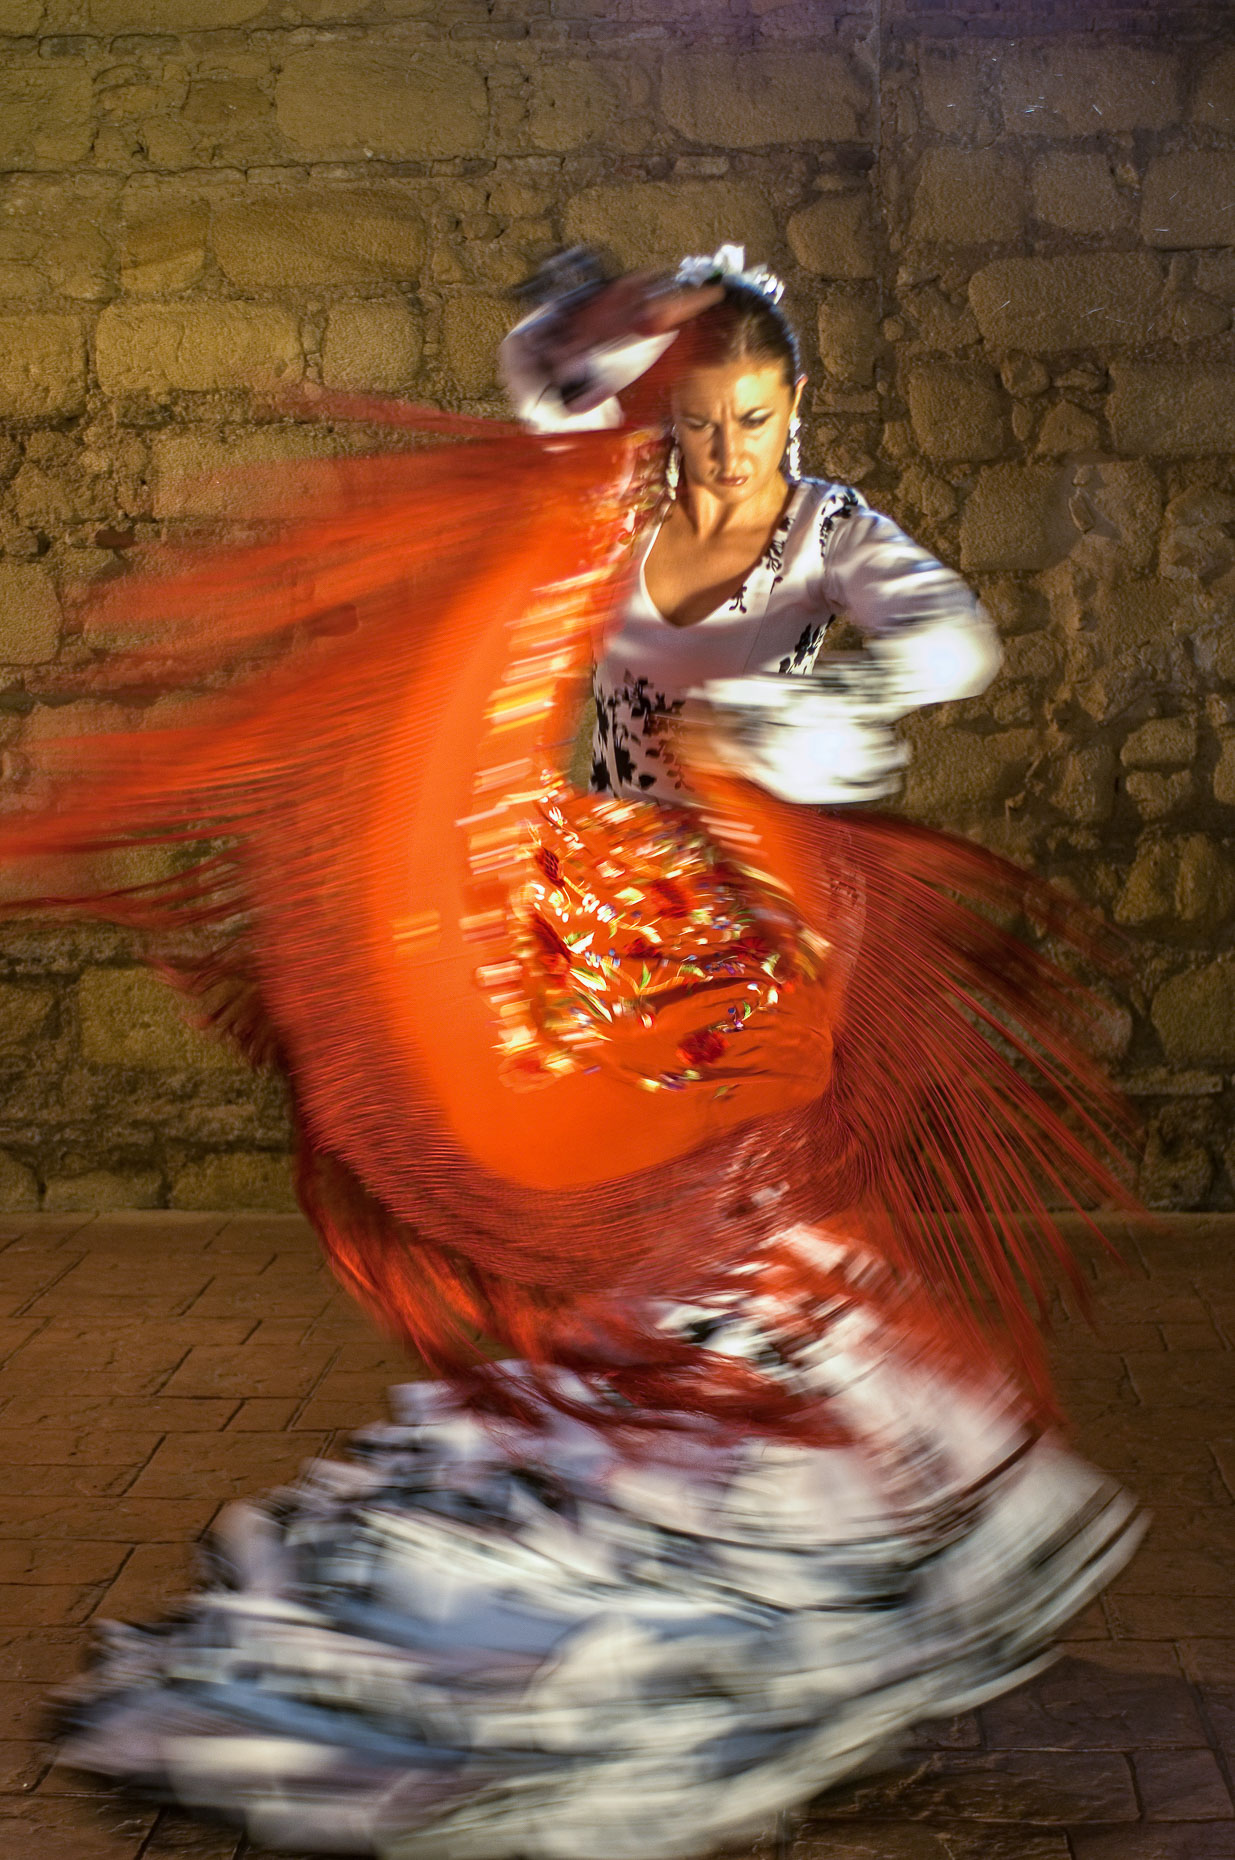 2008-3-1-Enless Vacation article-Travel-Flamenco 001